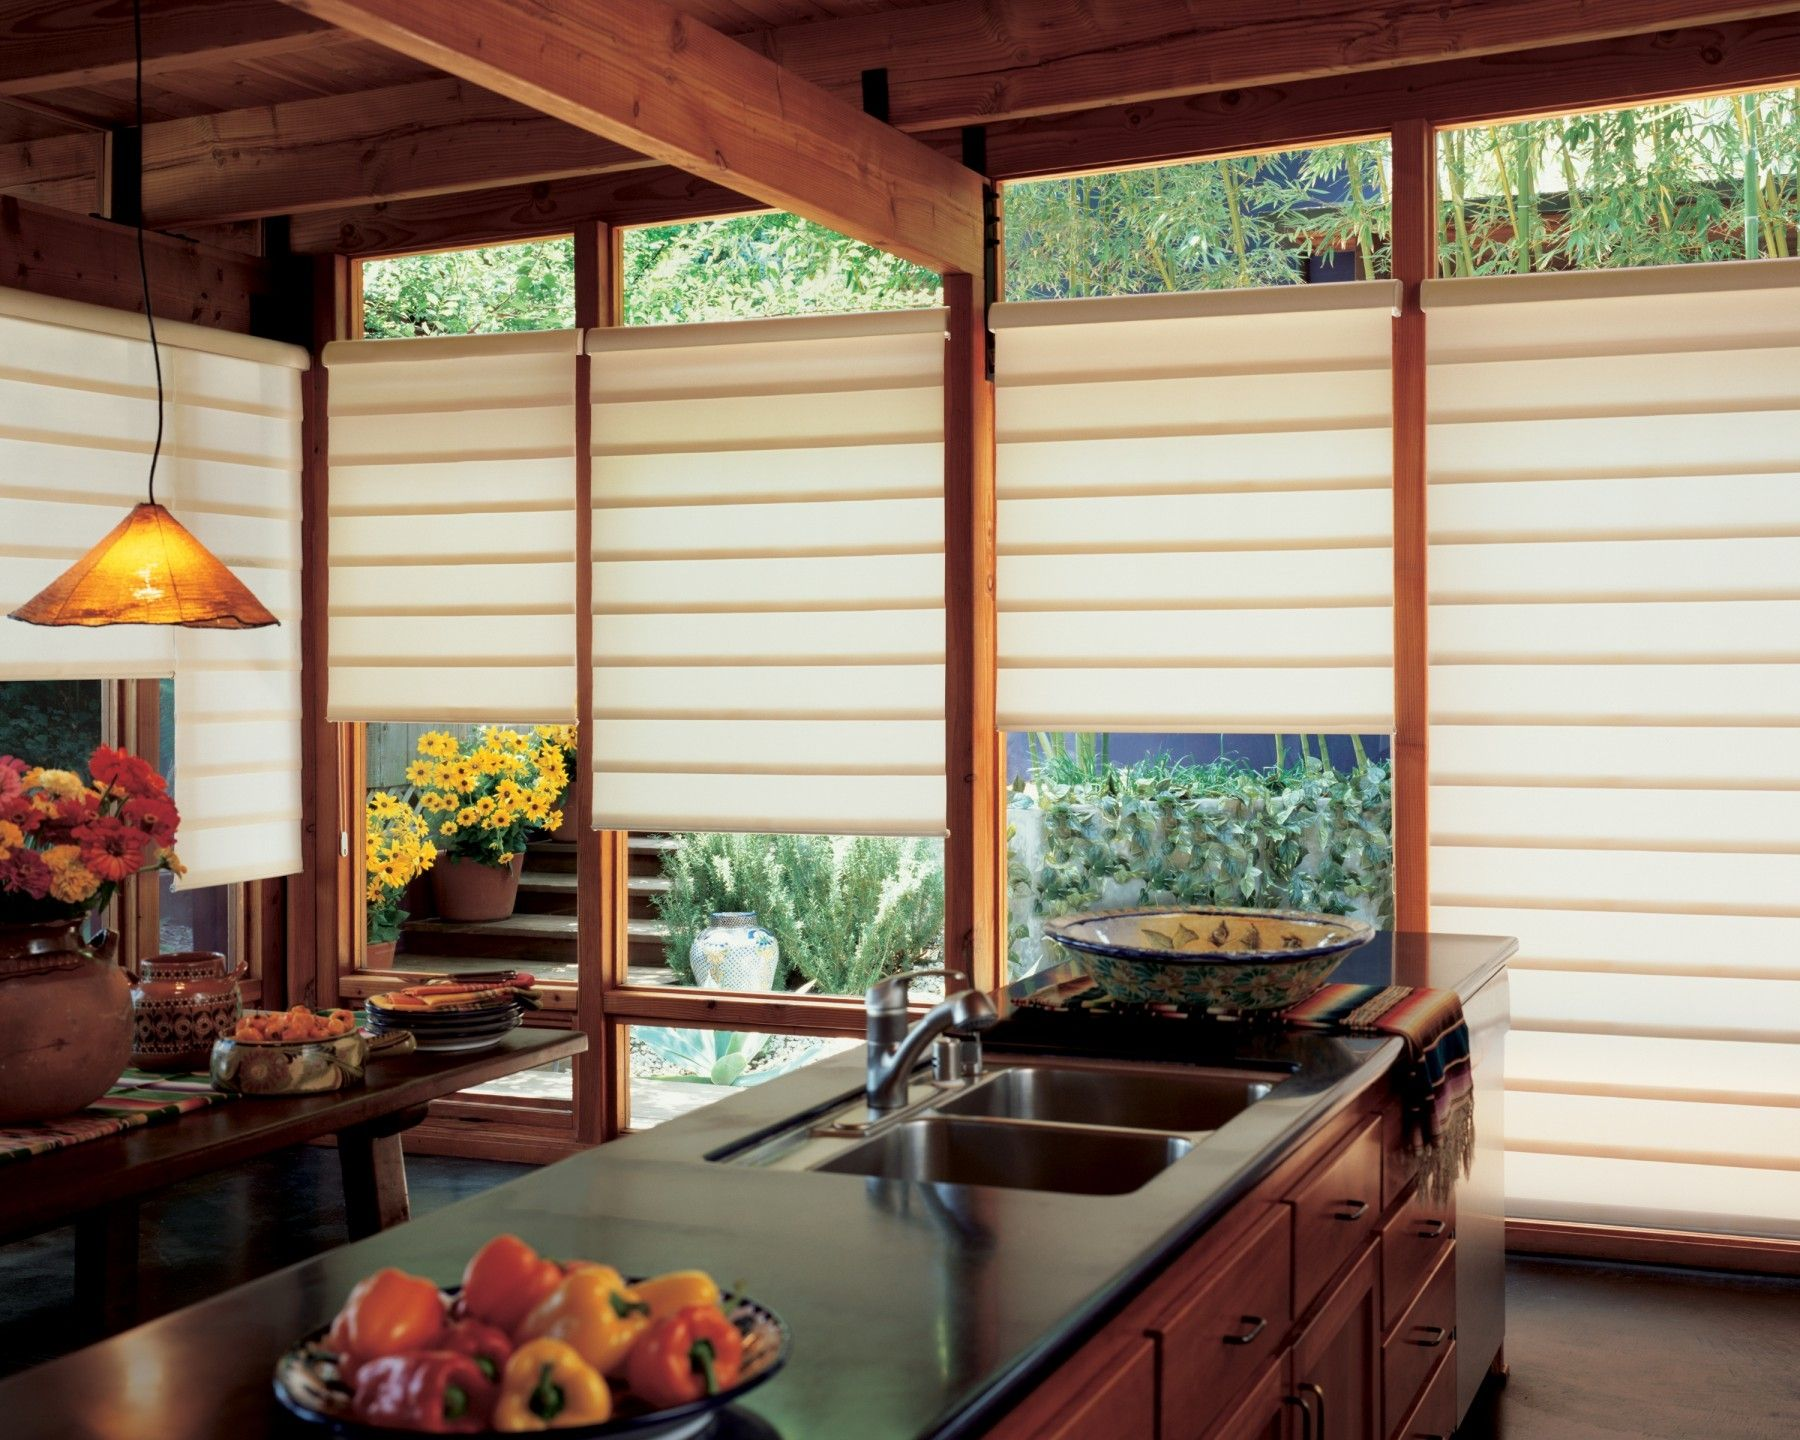 Kitchen Curtain Ideas Japanese Kitchen Window Curtains Ideas - Kitchen window treatment ideas